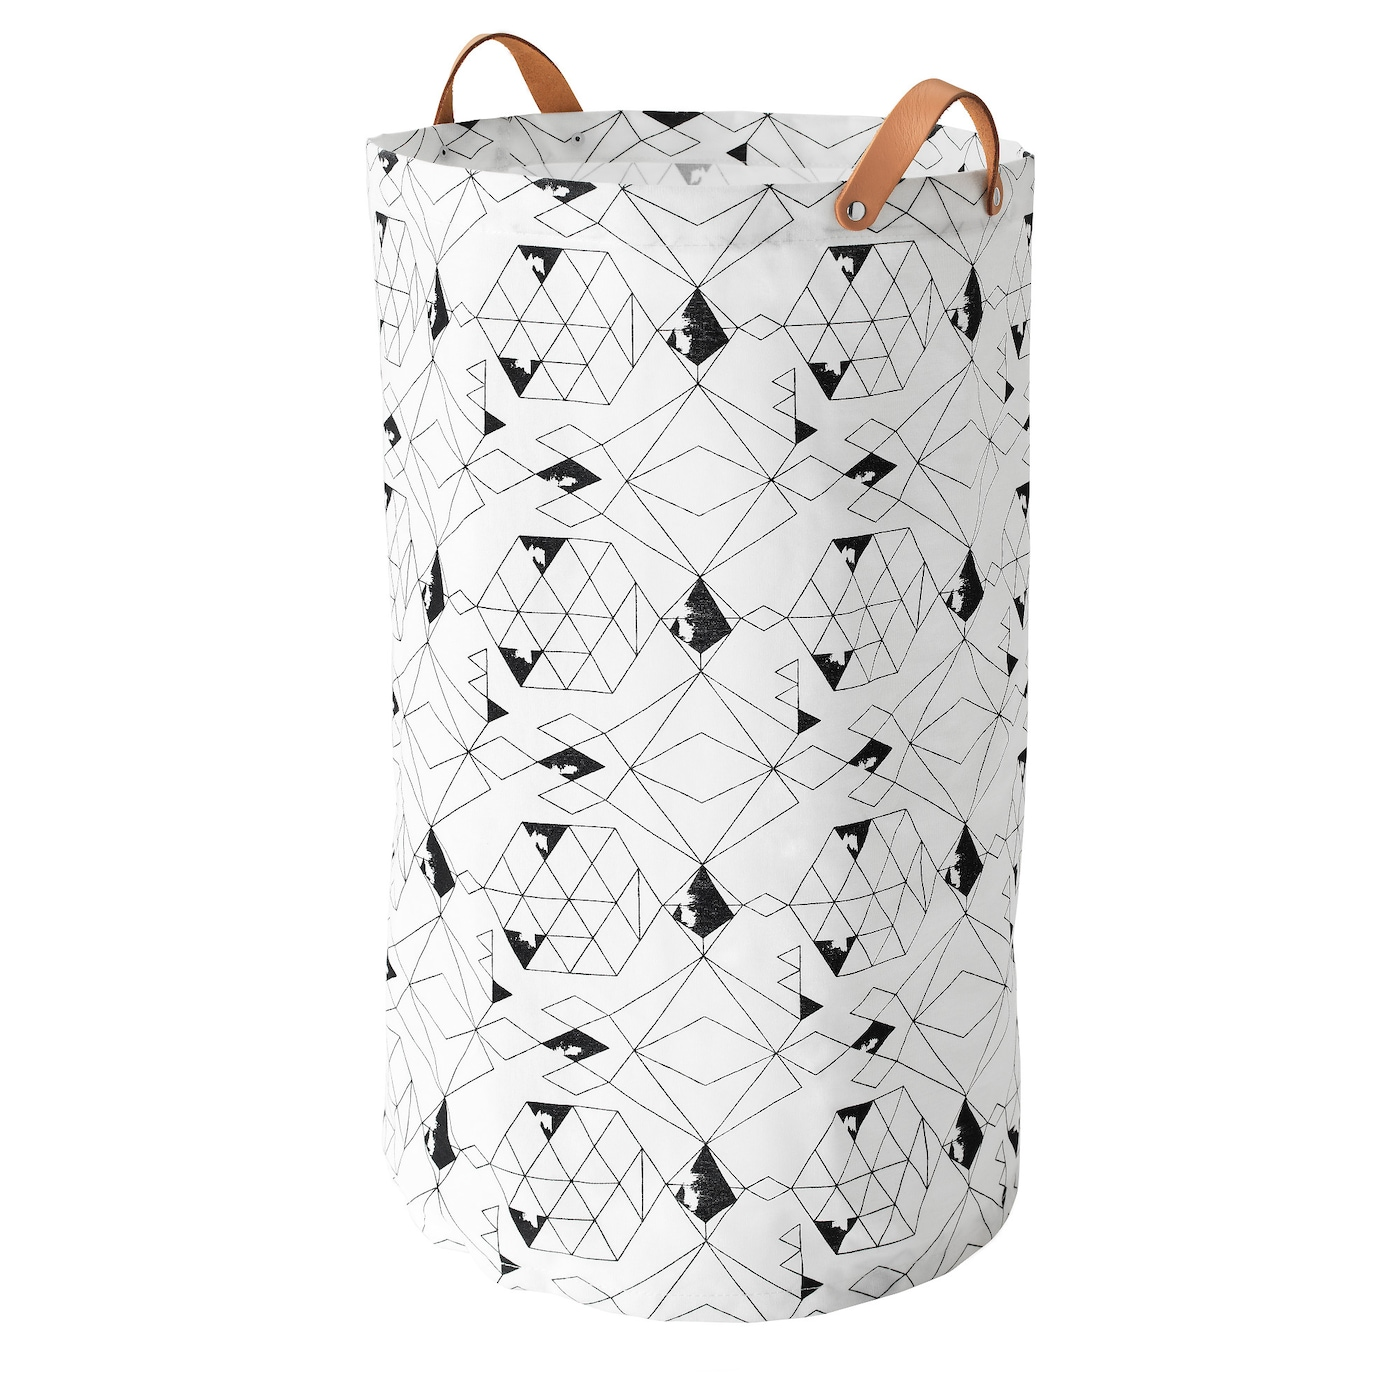 IKEA PLUMSA laundry bag The plastic coating on the inside protects against moisture.